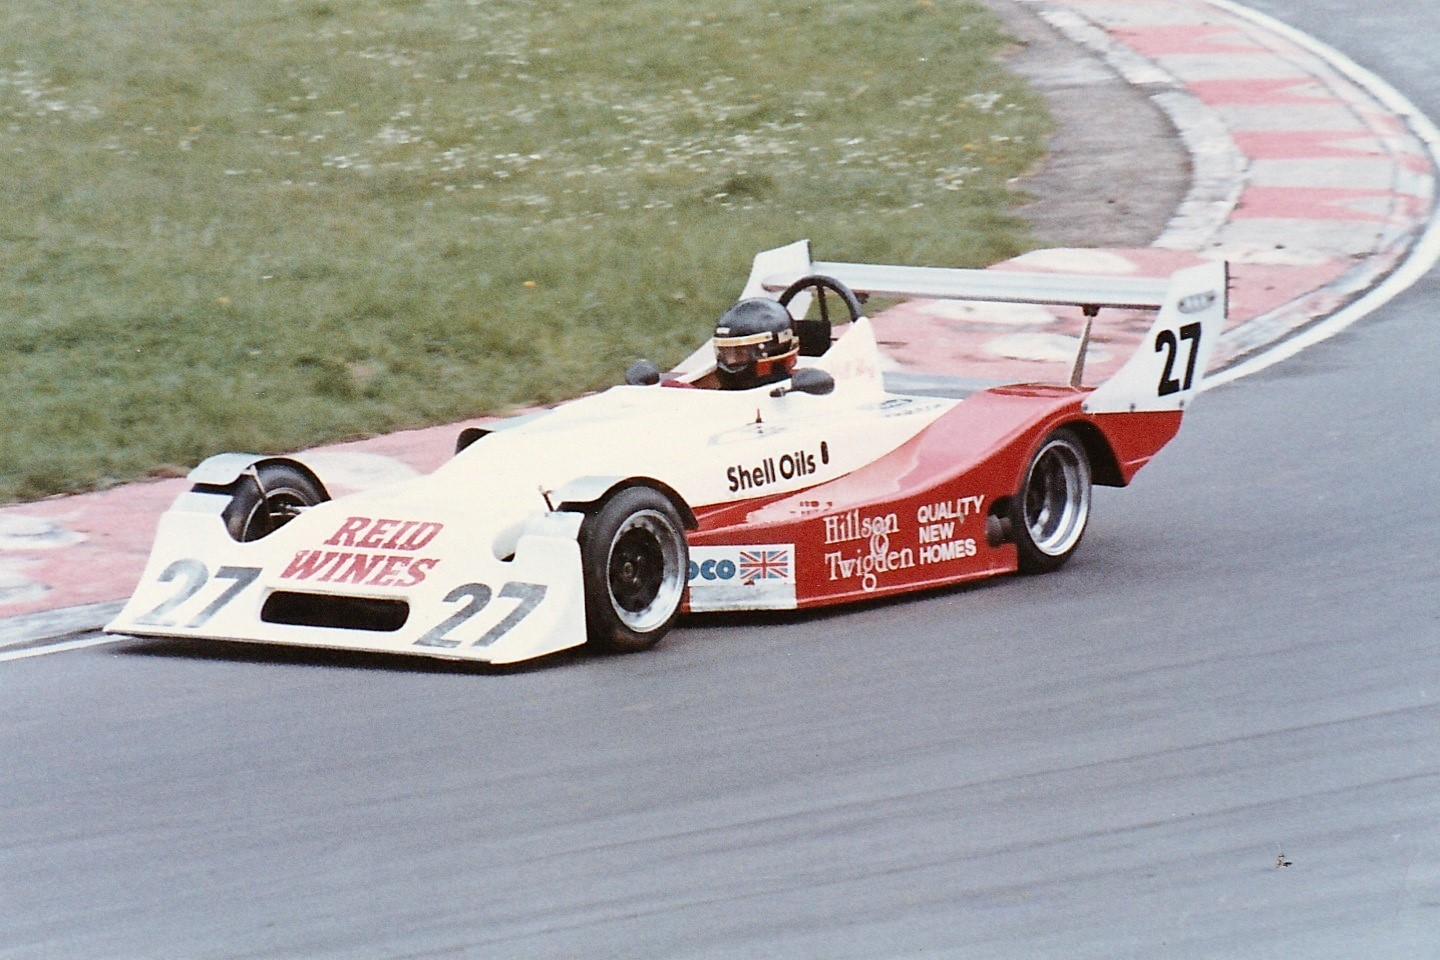 1984 MK24B - Clubmans Formula car: a development of the MK24 with revised rear bodywork and a further development of the rear axle lateral location system which Arthur termed as the WOB system as it was an amalgam of Watts, Olley and Bulldog mechanisms.Successes included: 1983 - Will Hoy, BARC Clubmans champion. 1983 - Hill Hoy, Doningotn Clubmans champion. 1984 - Will Hoy, Trimoco Clubmans champion. 1984 - Will Hoy, Clubmans Register champion. 1985 - Guy Woodward, Powerscreen Clubmans champion.